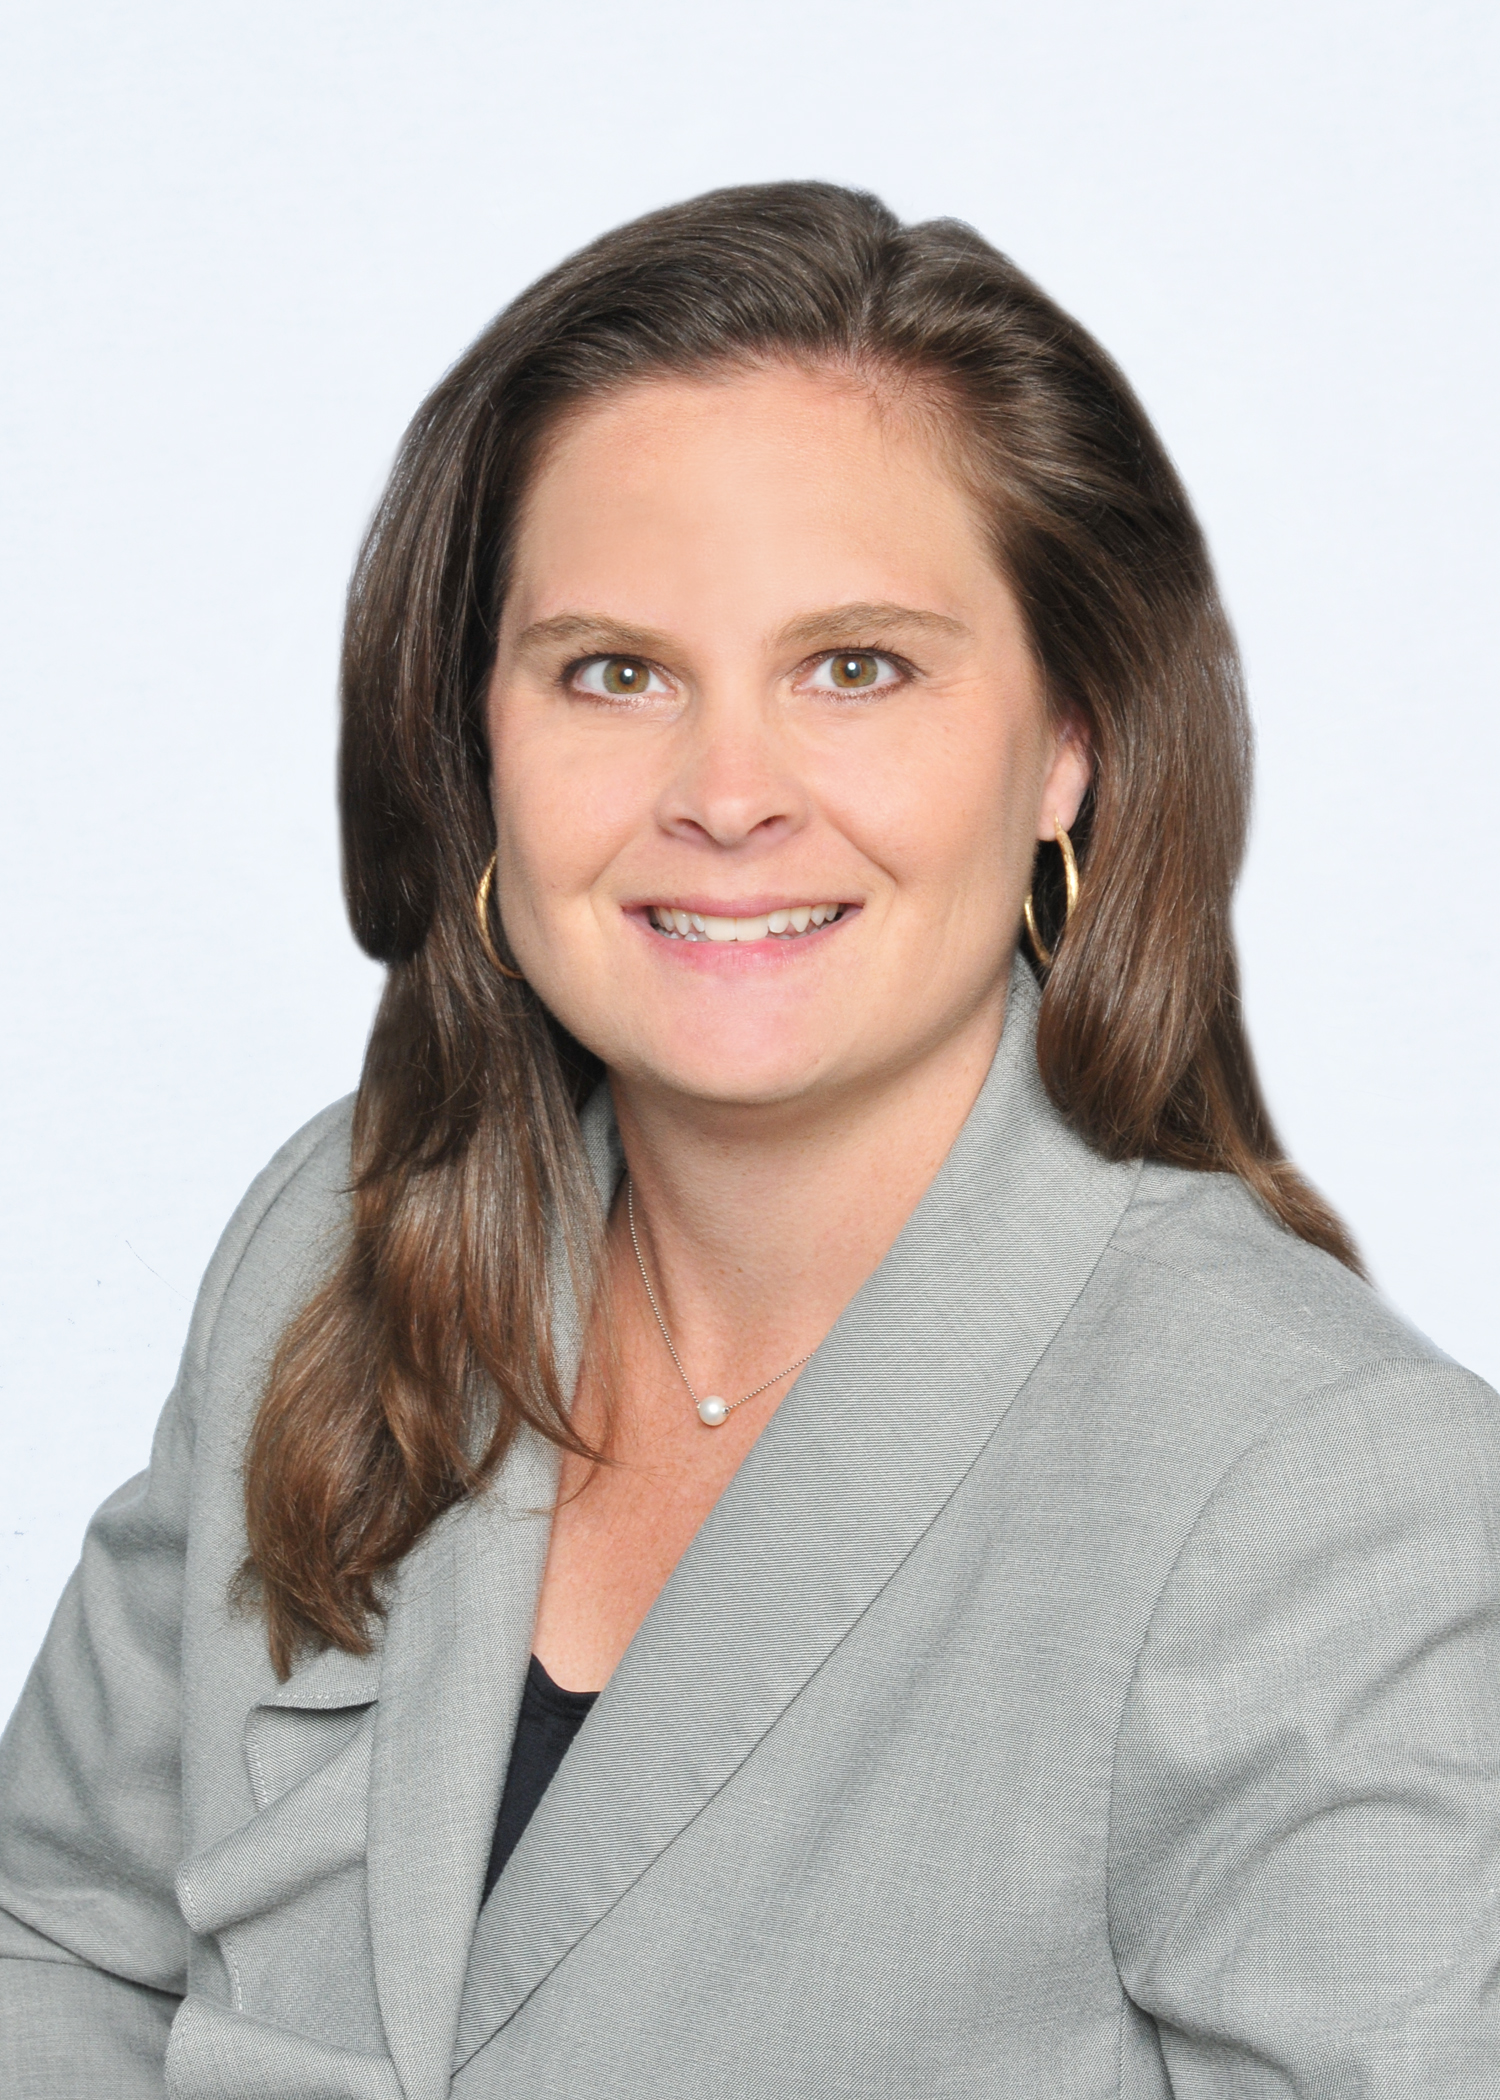 Anne M. Sterba (pictured) has joined Fish & Richardson as Of Counsel in Trademark and Copyright Group.